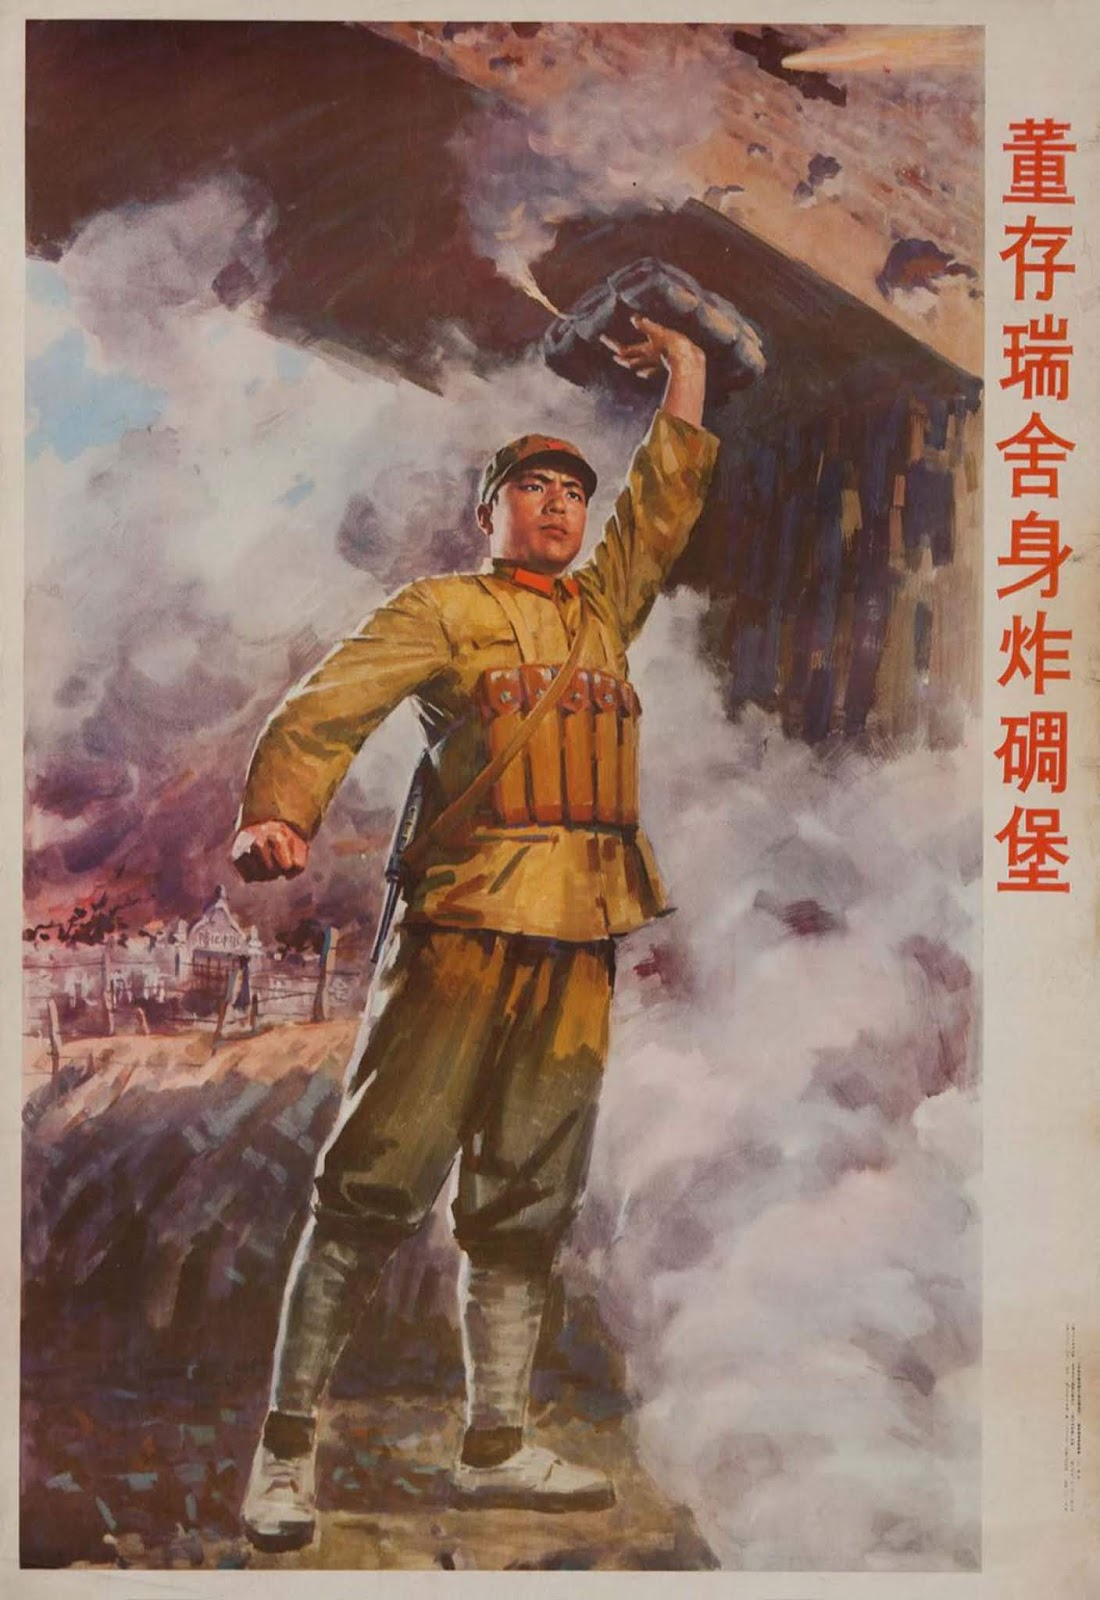 A depiction of Dong Cunrui, who sacrificed his own life in 1949 during the Chinese Civil War while detonating explosives in an enemy bunker. c. 1960.